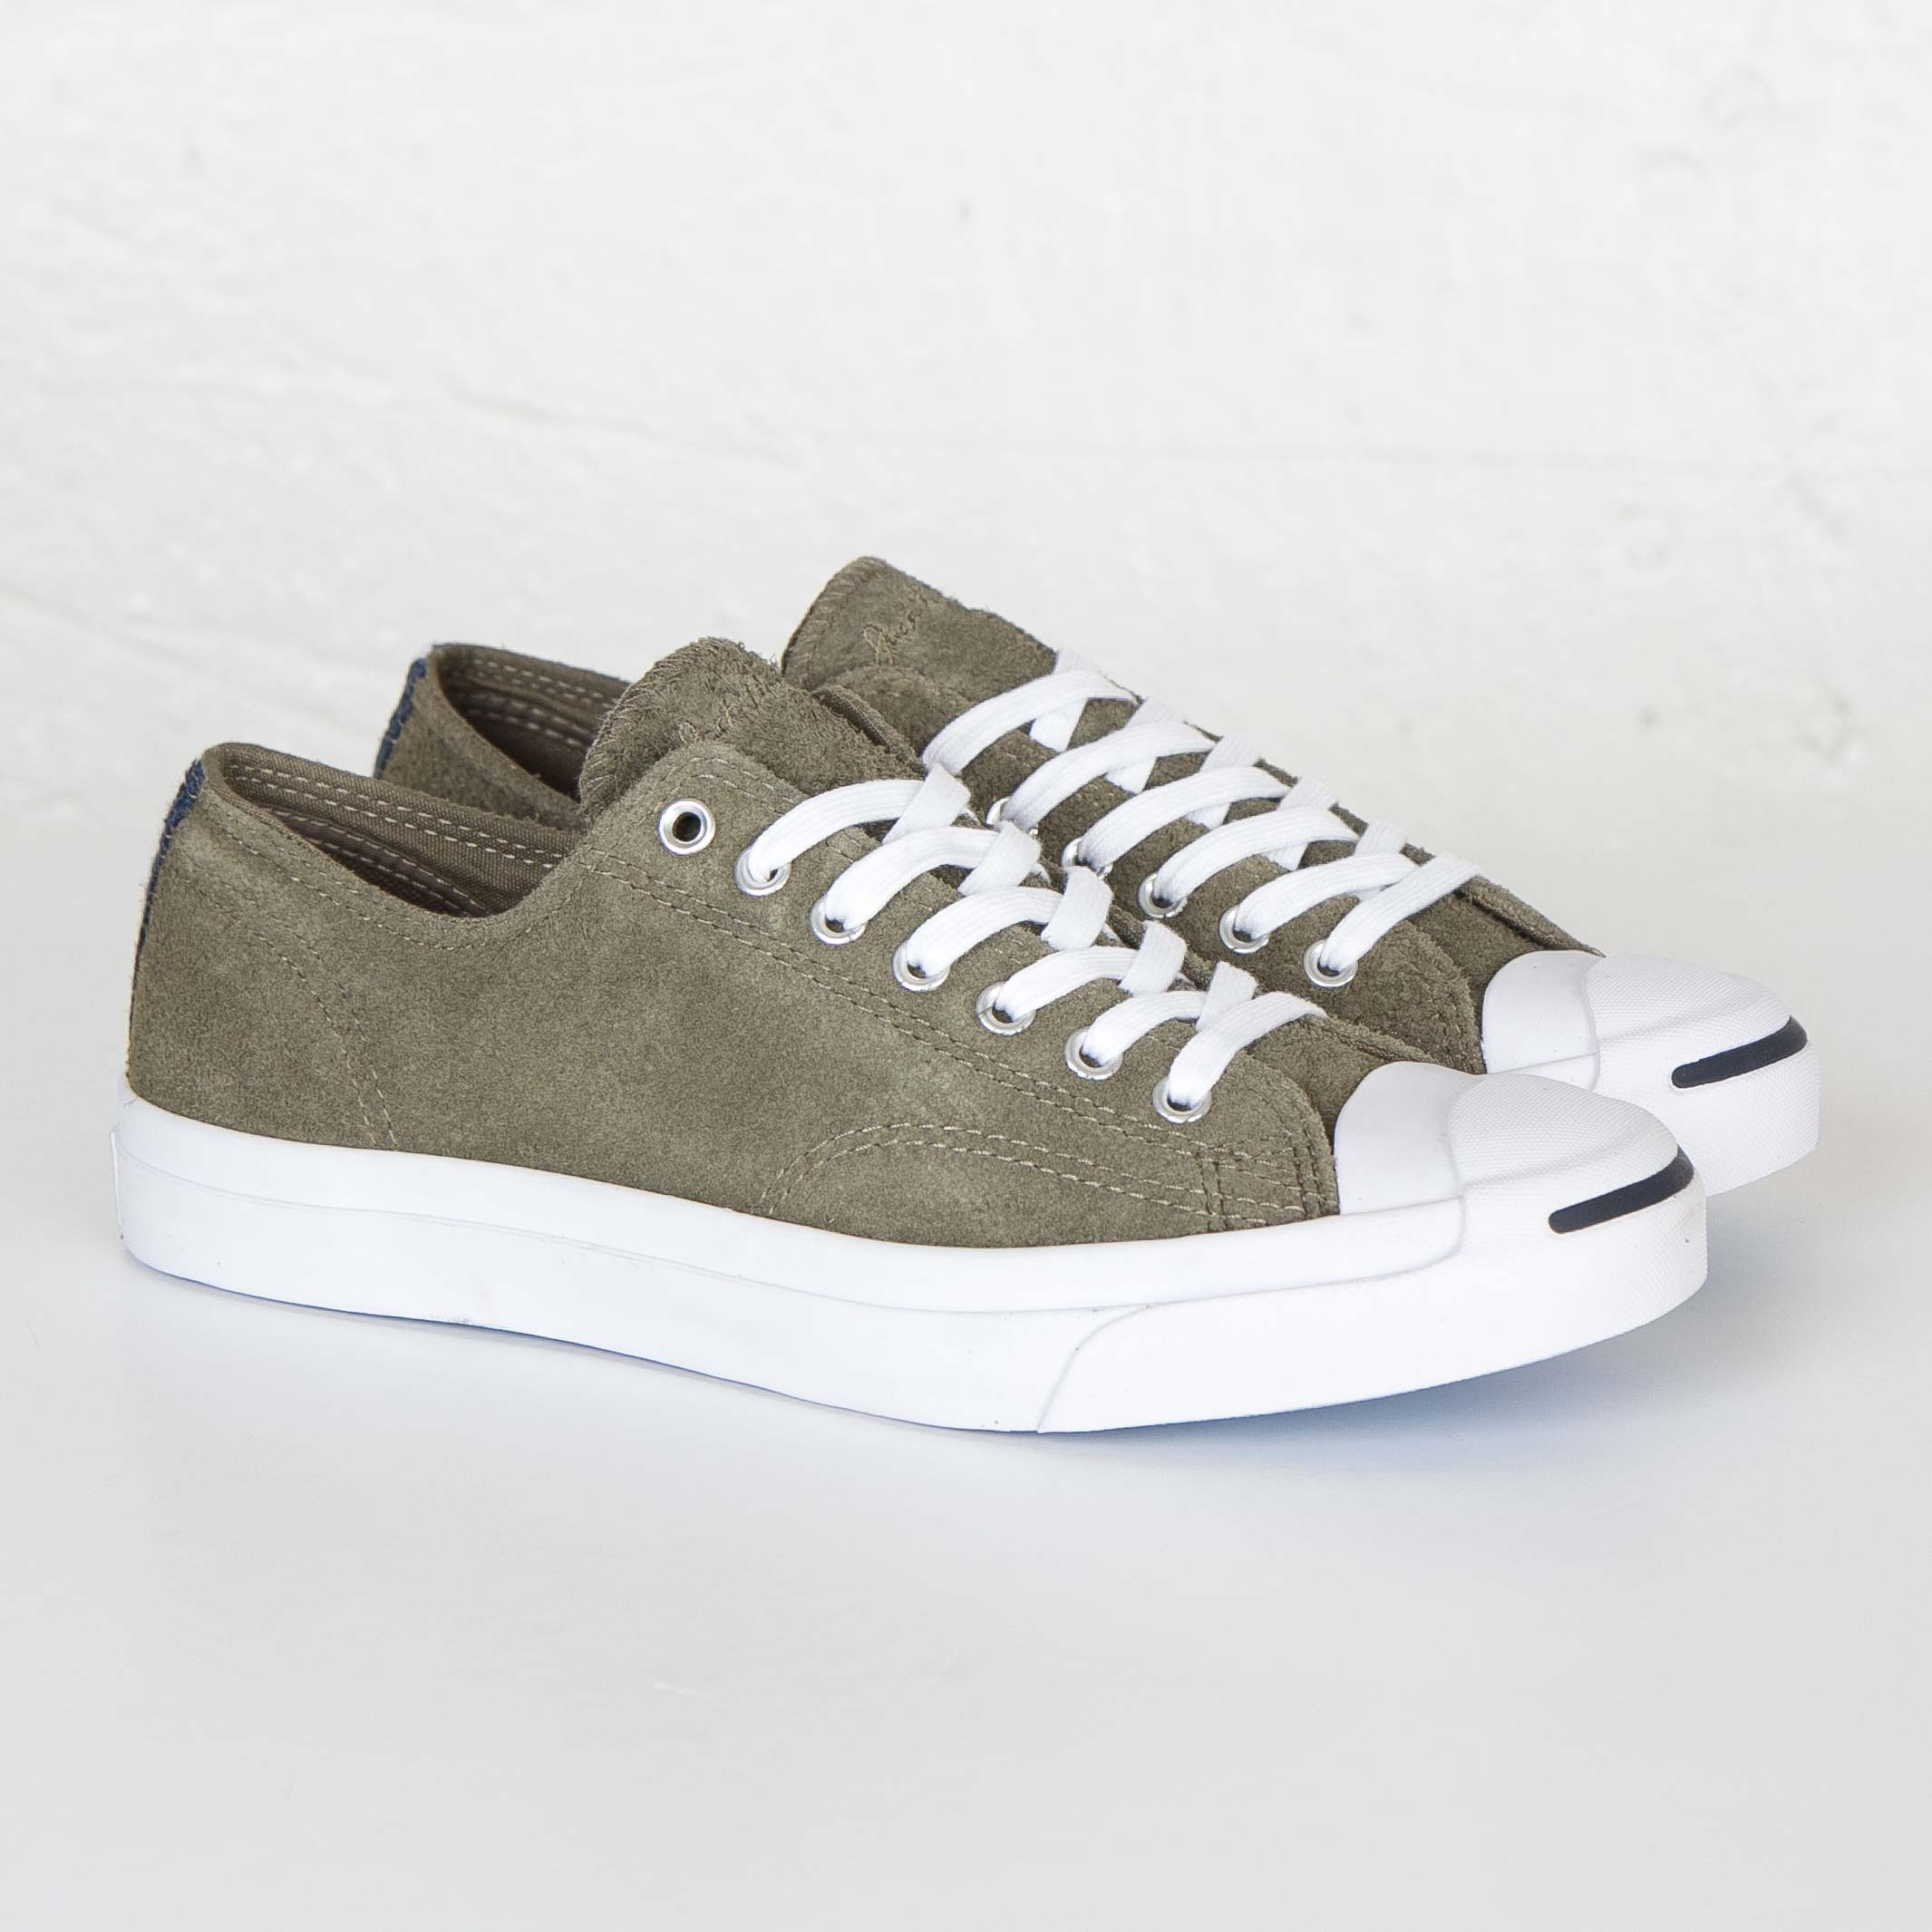 Converse Jack Purcell Suede - 149939c - Sneakersnstuff  85a138fff547